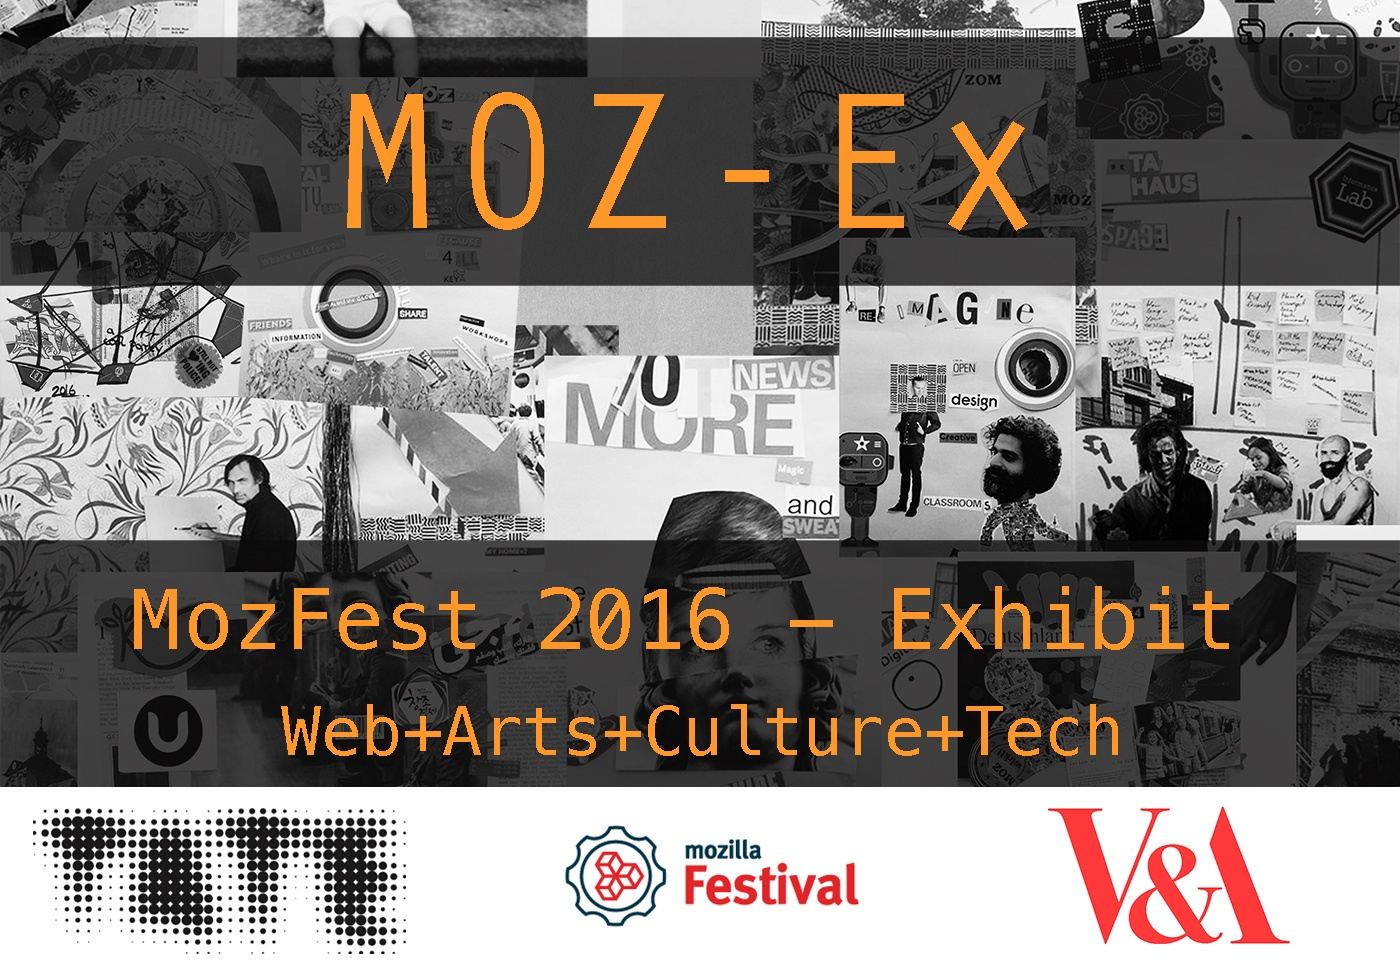 MozFest fringe blog takeover: Day 3